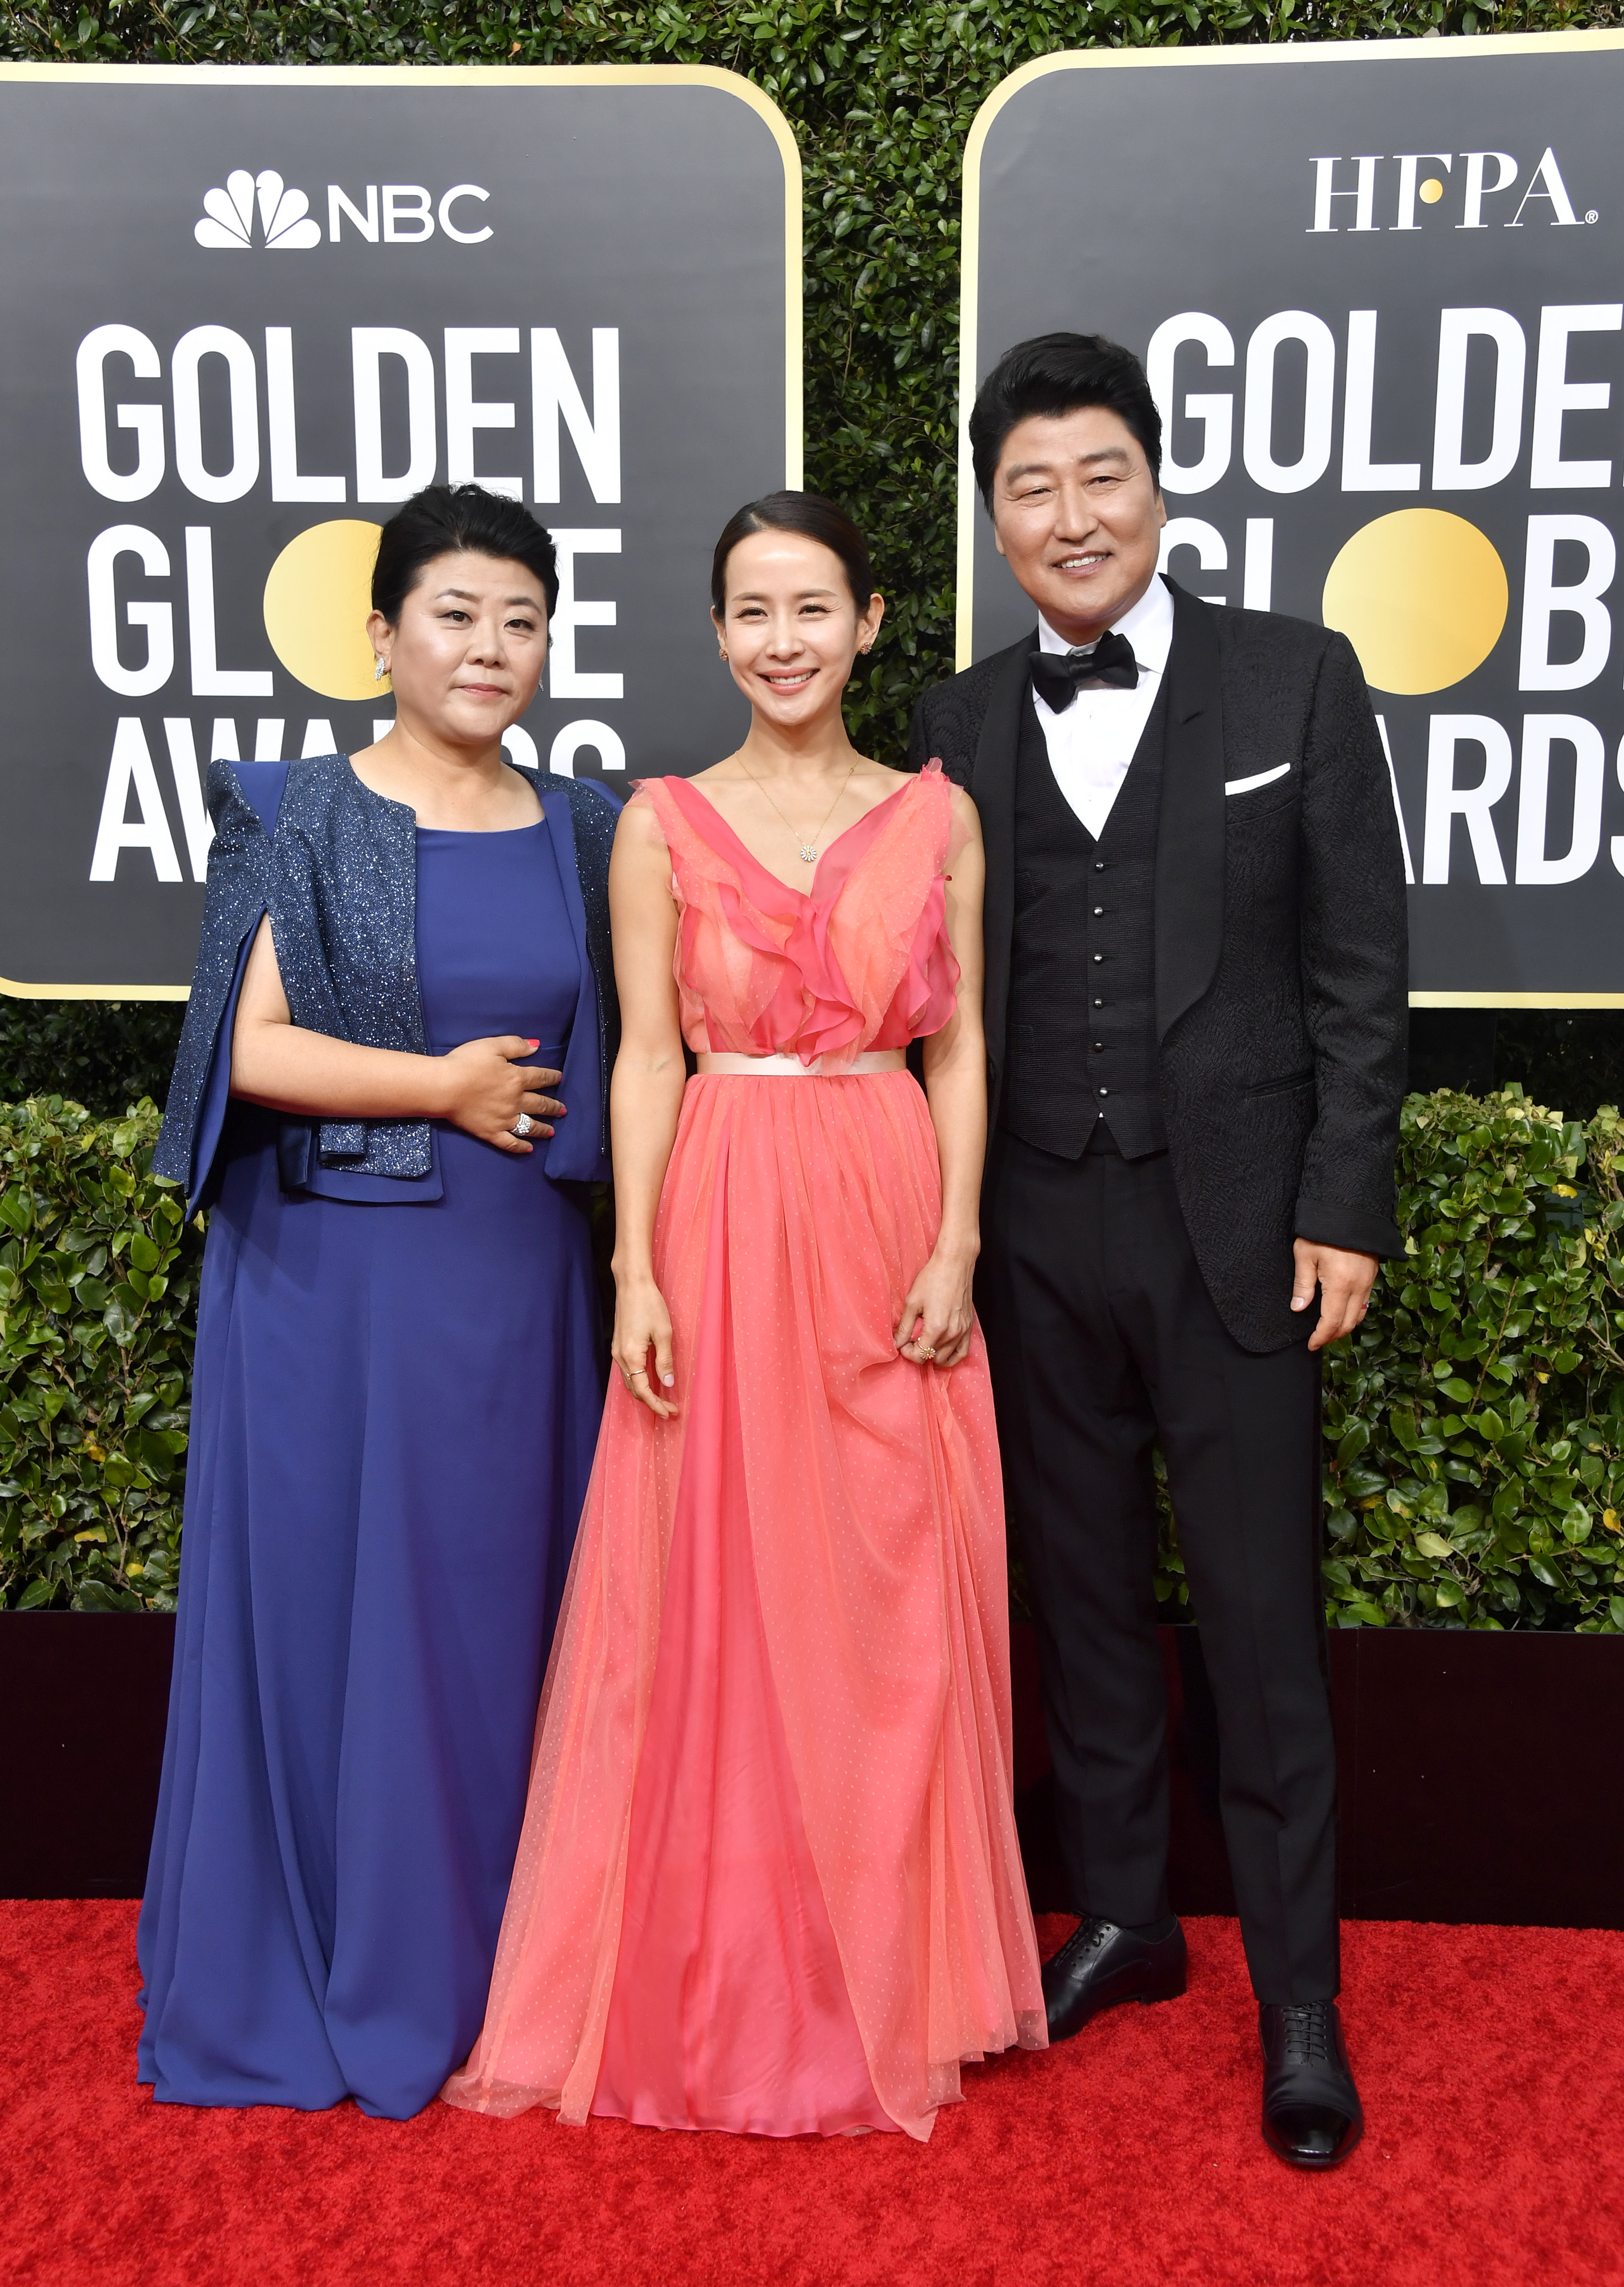 BEVERLY HILLS, CALIFORNIA - JANUARY 05: (L-R) Lee Jeong-eun, Cho Yeo-jeong, and Song Kang-ho attend the 77th Annual Golden Globe Awards at The Beverly Hilton Hotel on January 05, 2020 in Beverly Hills, California. (Photo by Frazer Harrison/Getty Images)